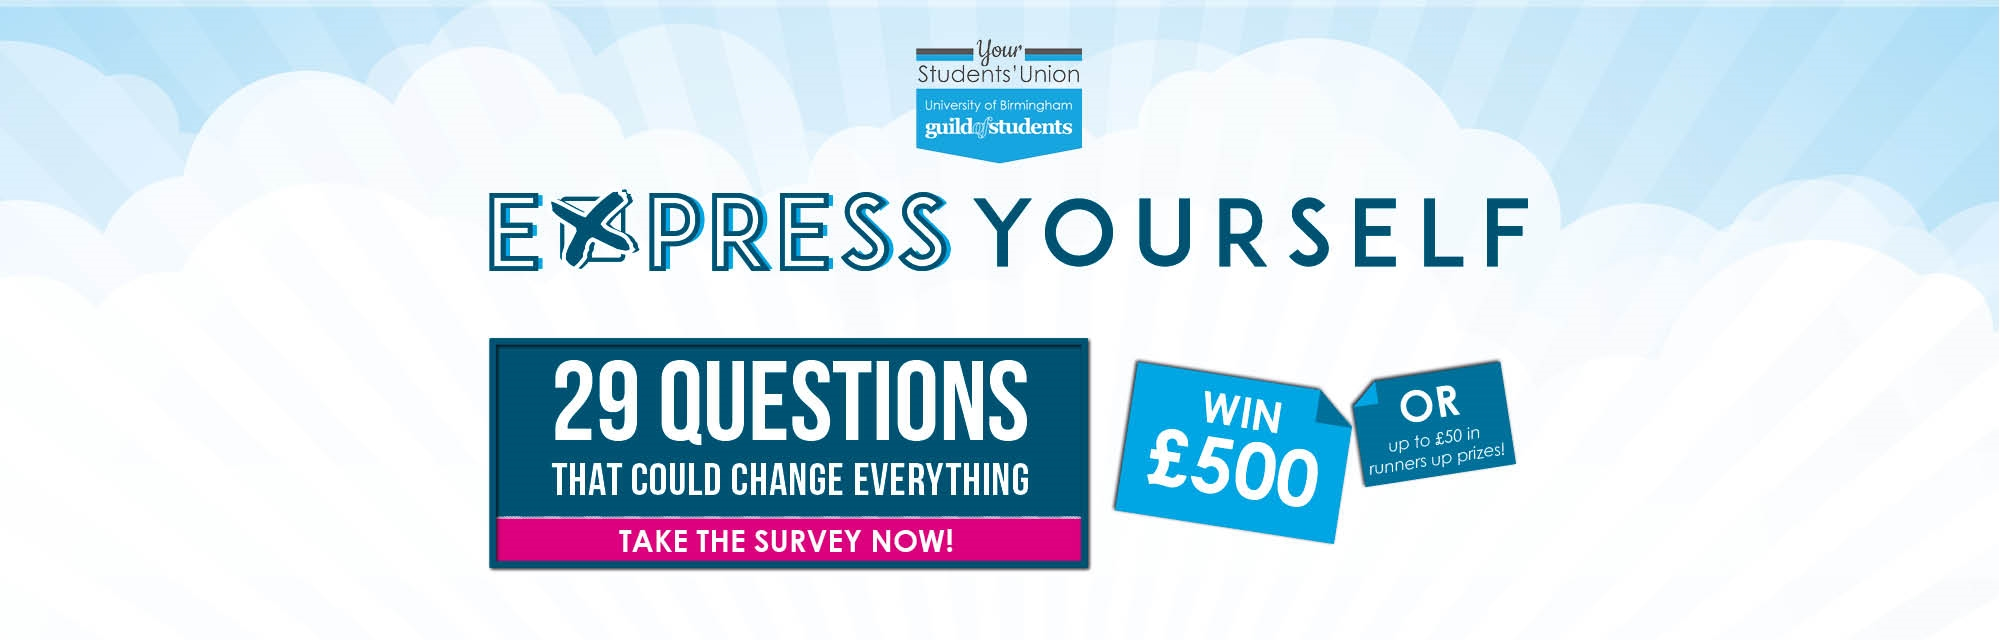 express yourself - your feedback could change everything - take our survey now